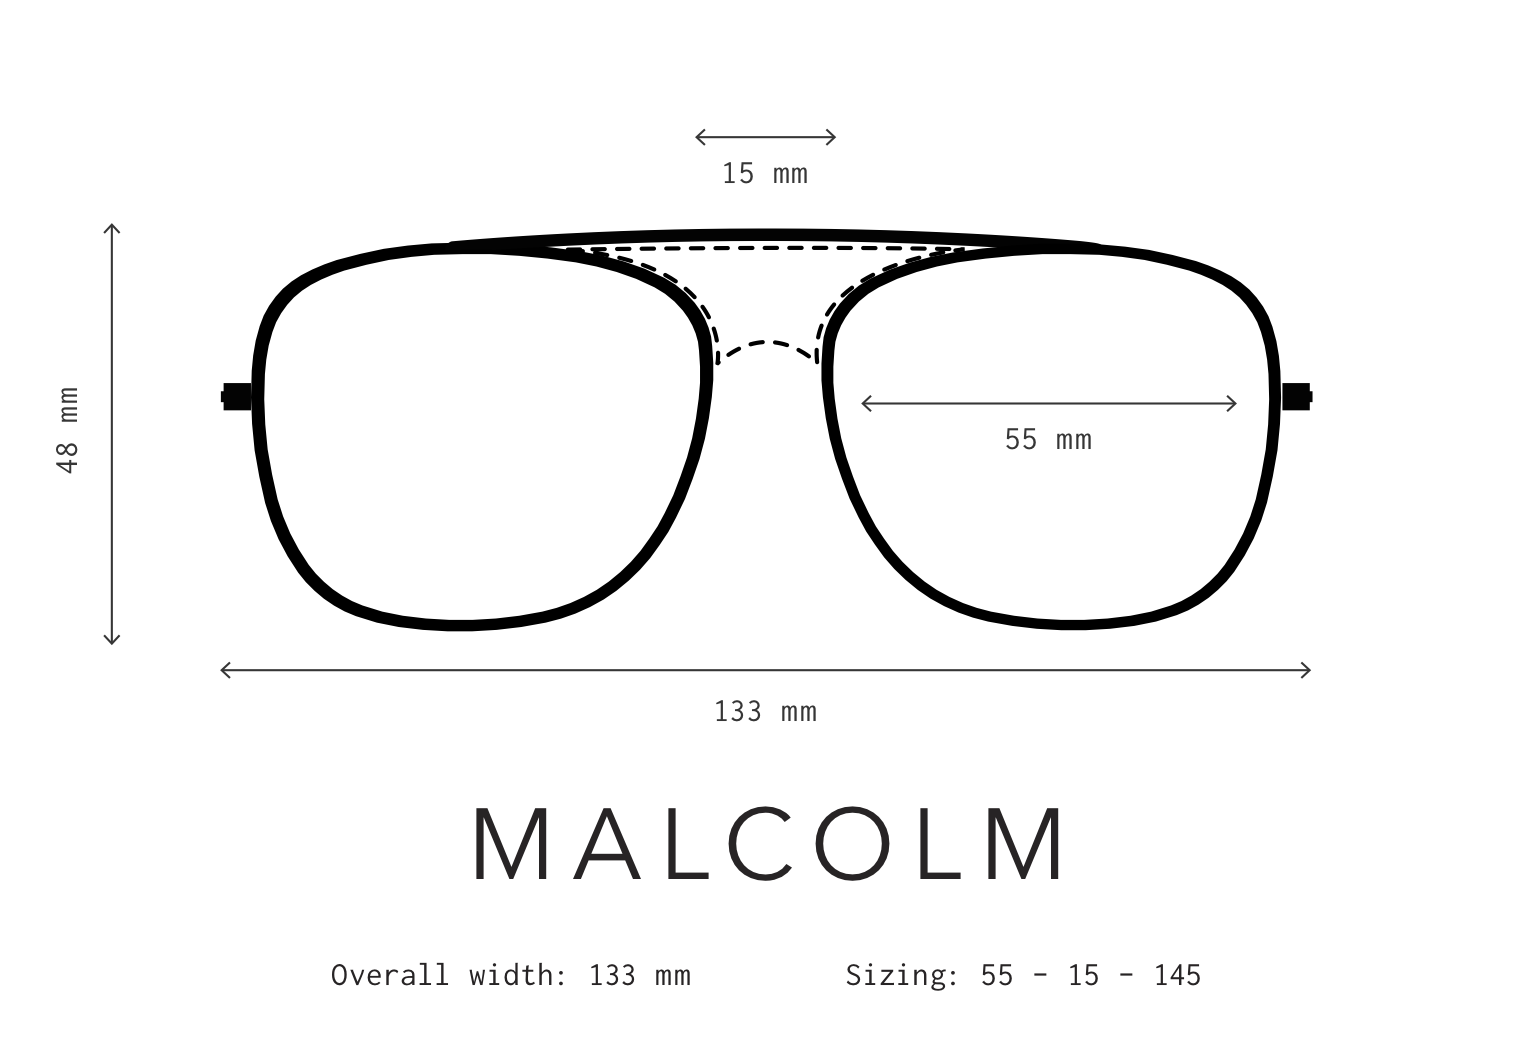 Malcolm Sunglasses Fit Information